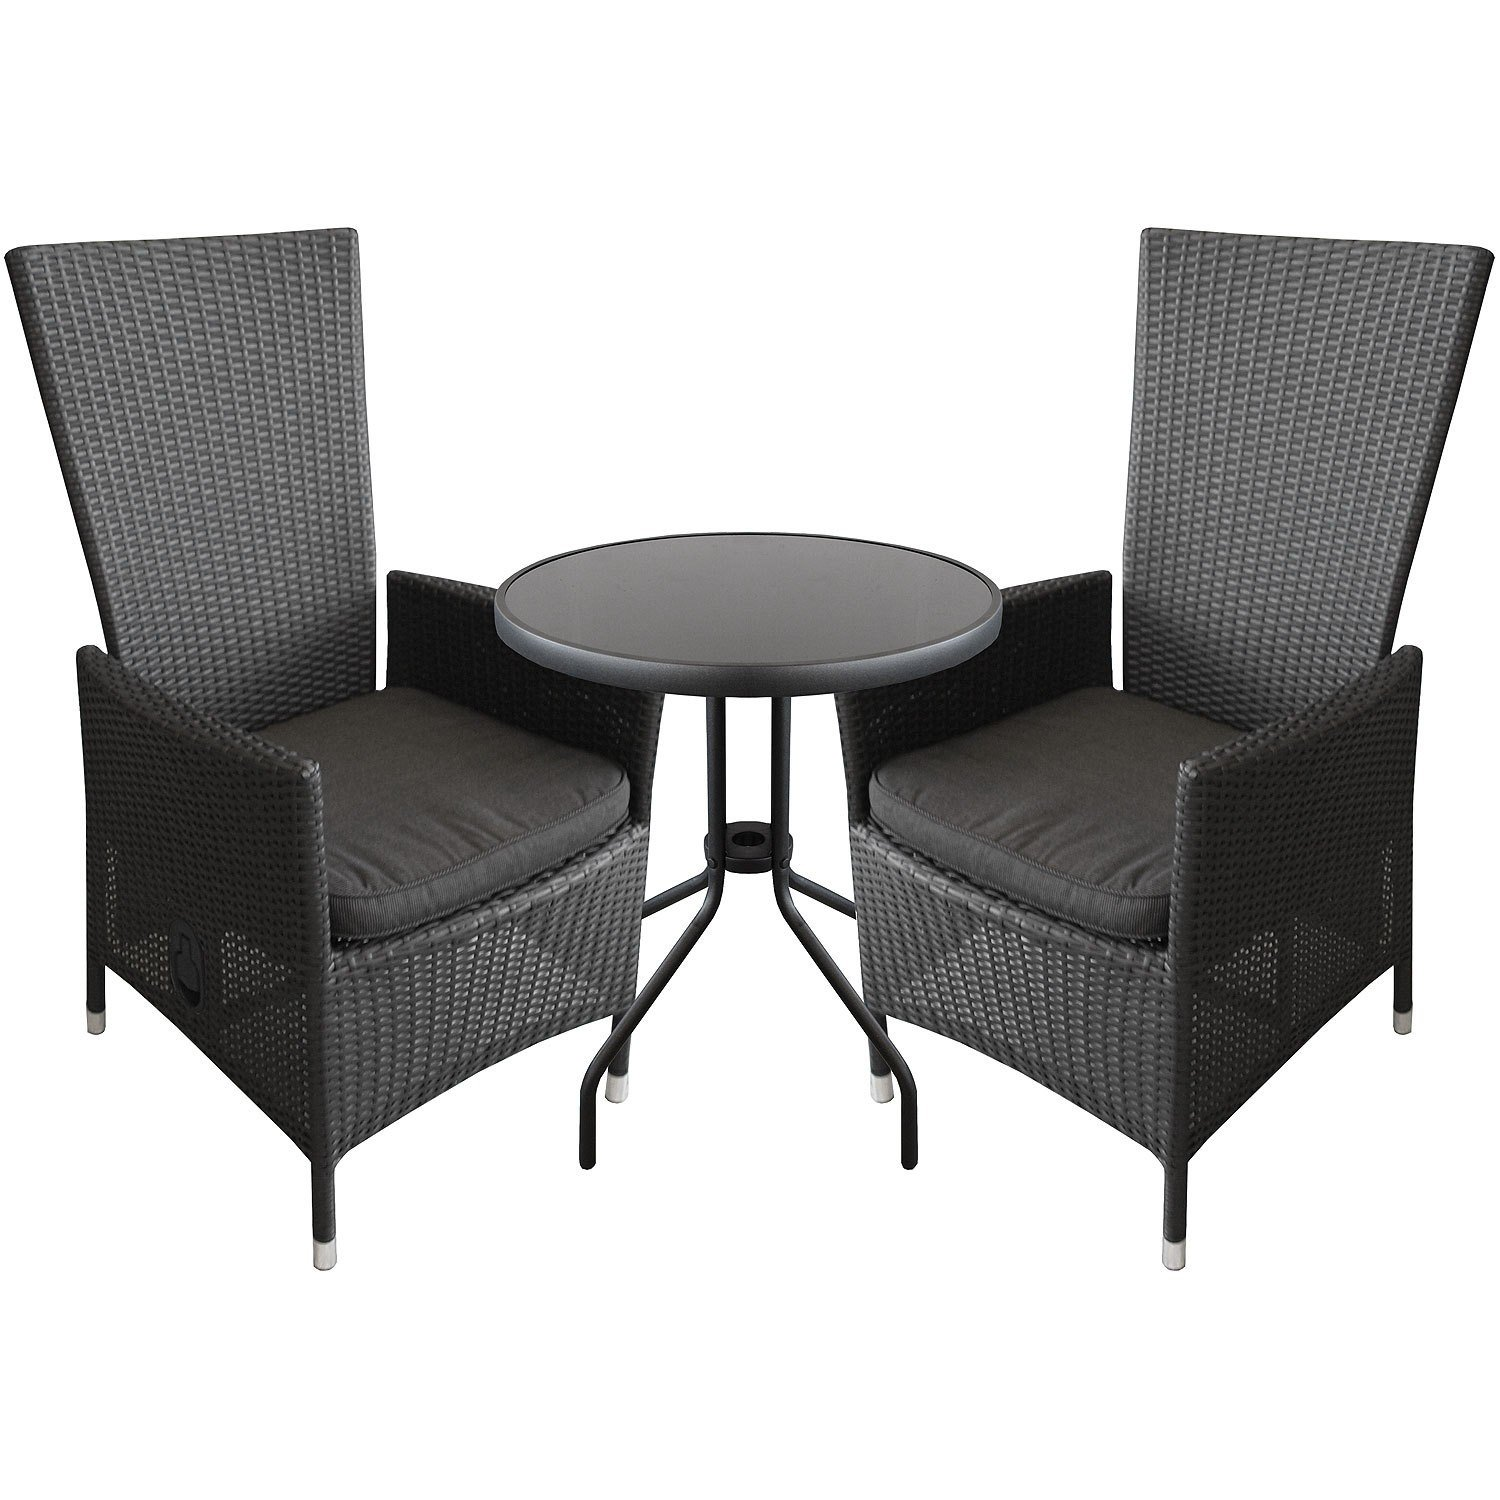 3tlg bistrogarnitur bistro set balkonm bel bistrotisch. Black Bedroom Furniture Sets. Home Design Ideas